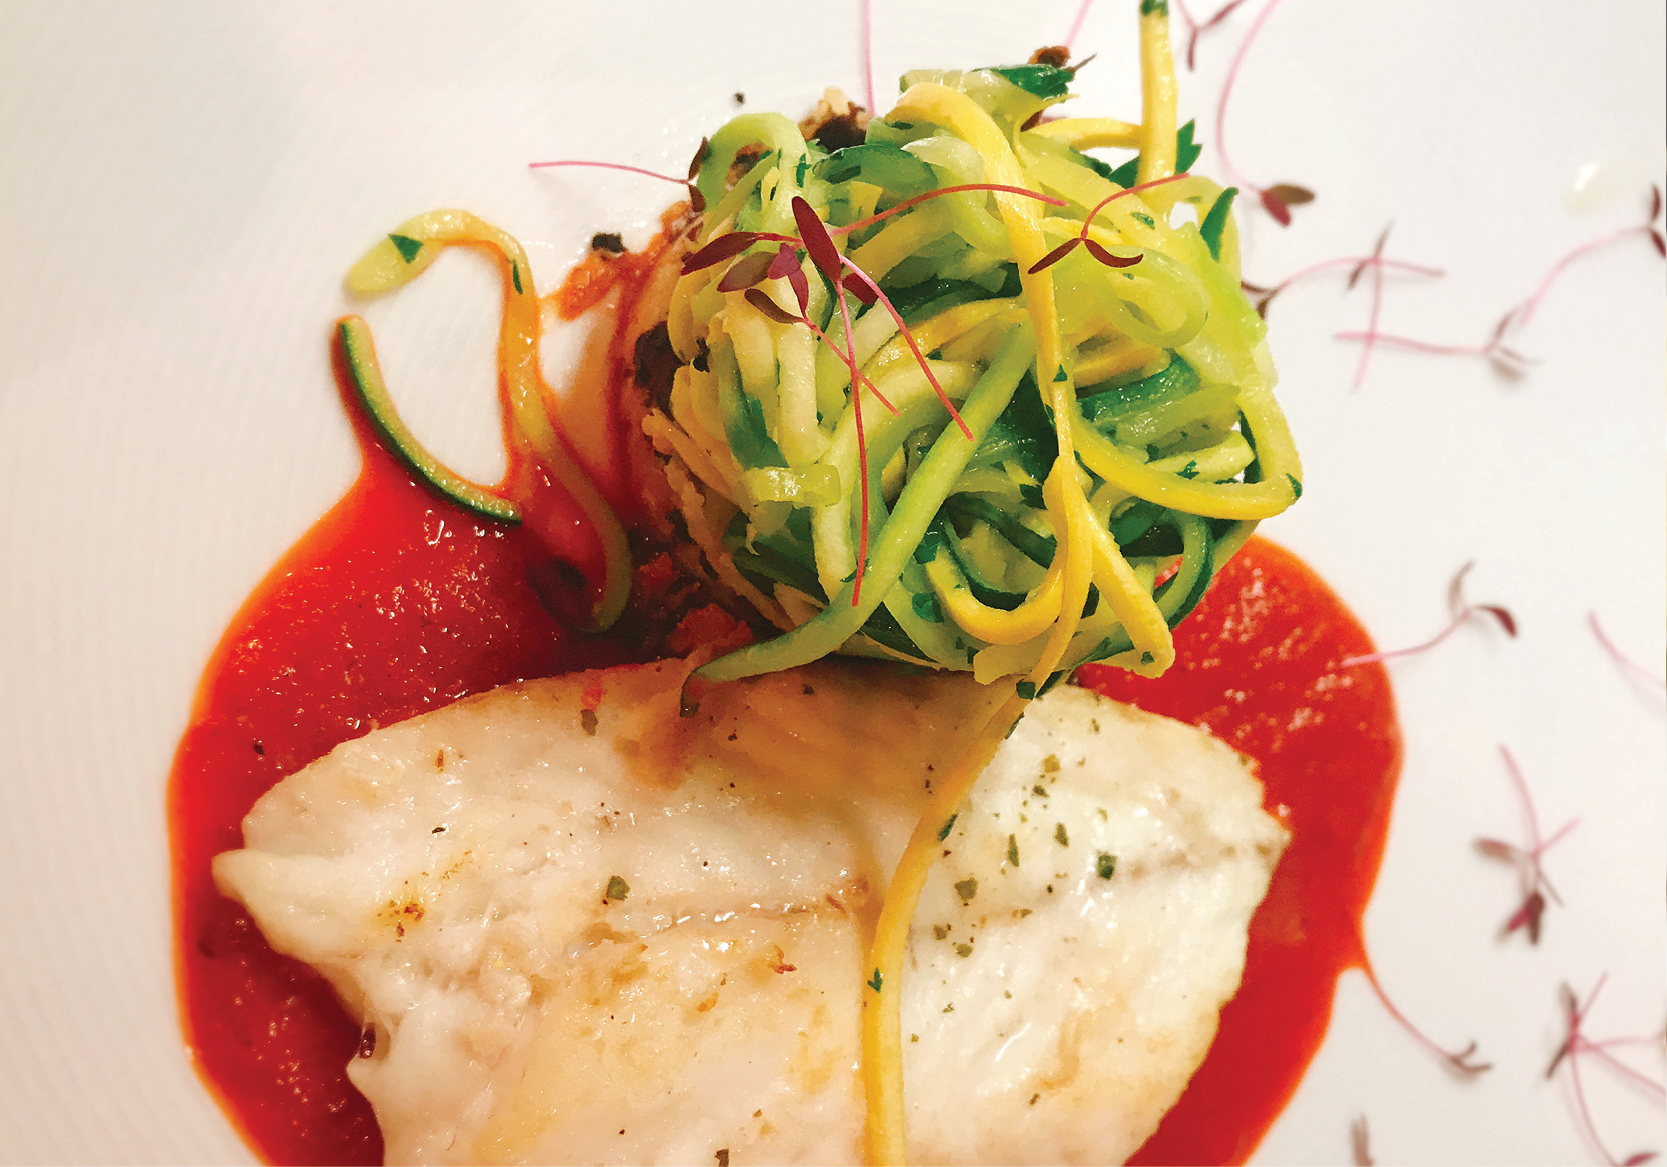 Fresh Caught Silky Snapper with Zoodles (Zucchini Noodles) and Roasted Tomato and Capsicum Sauce